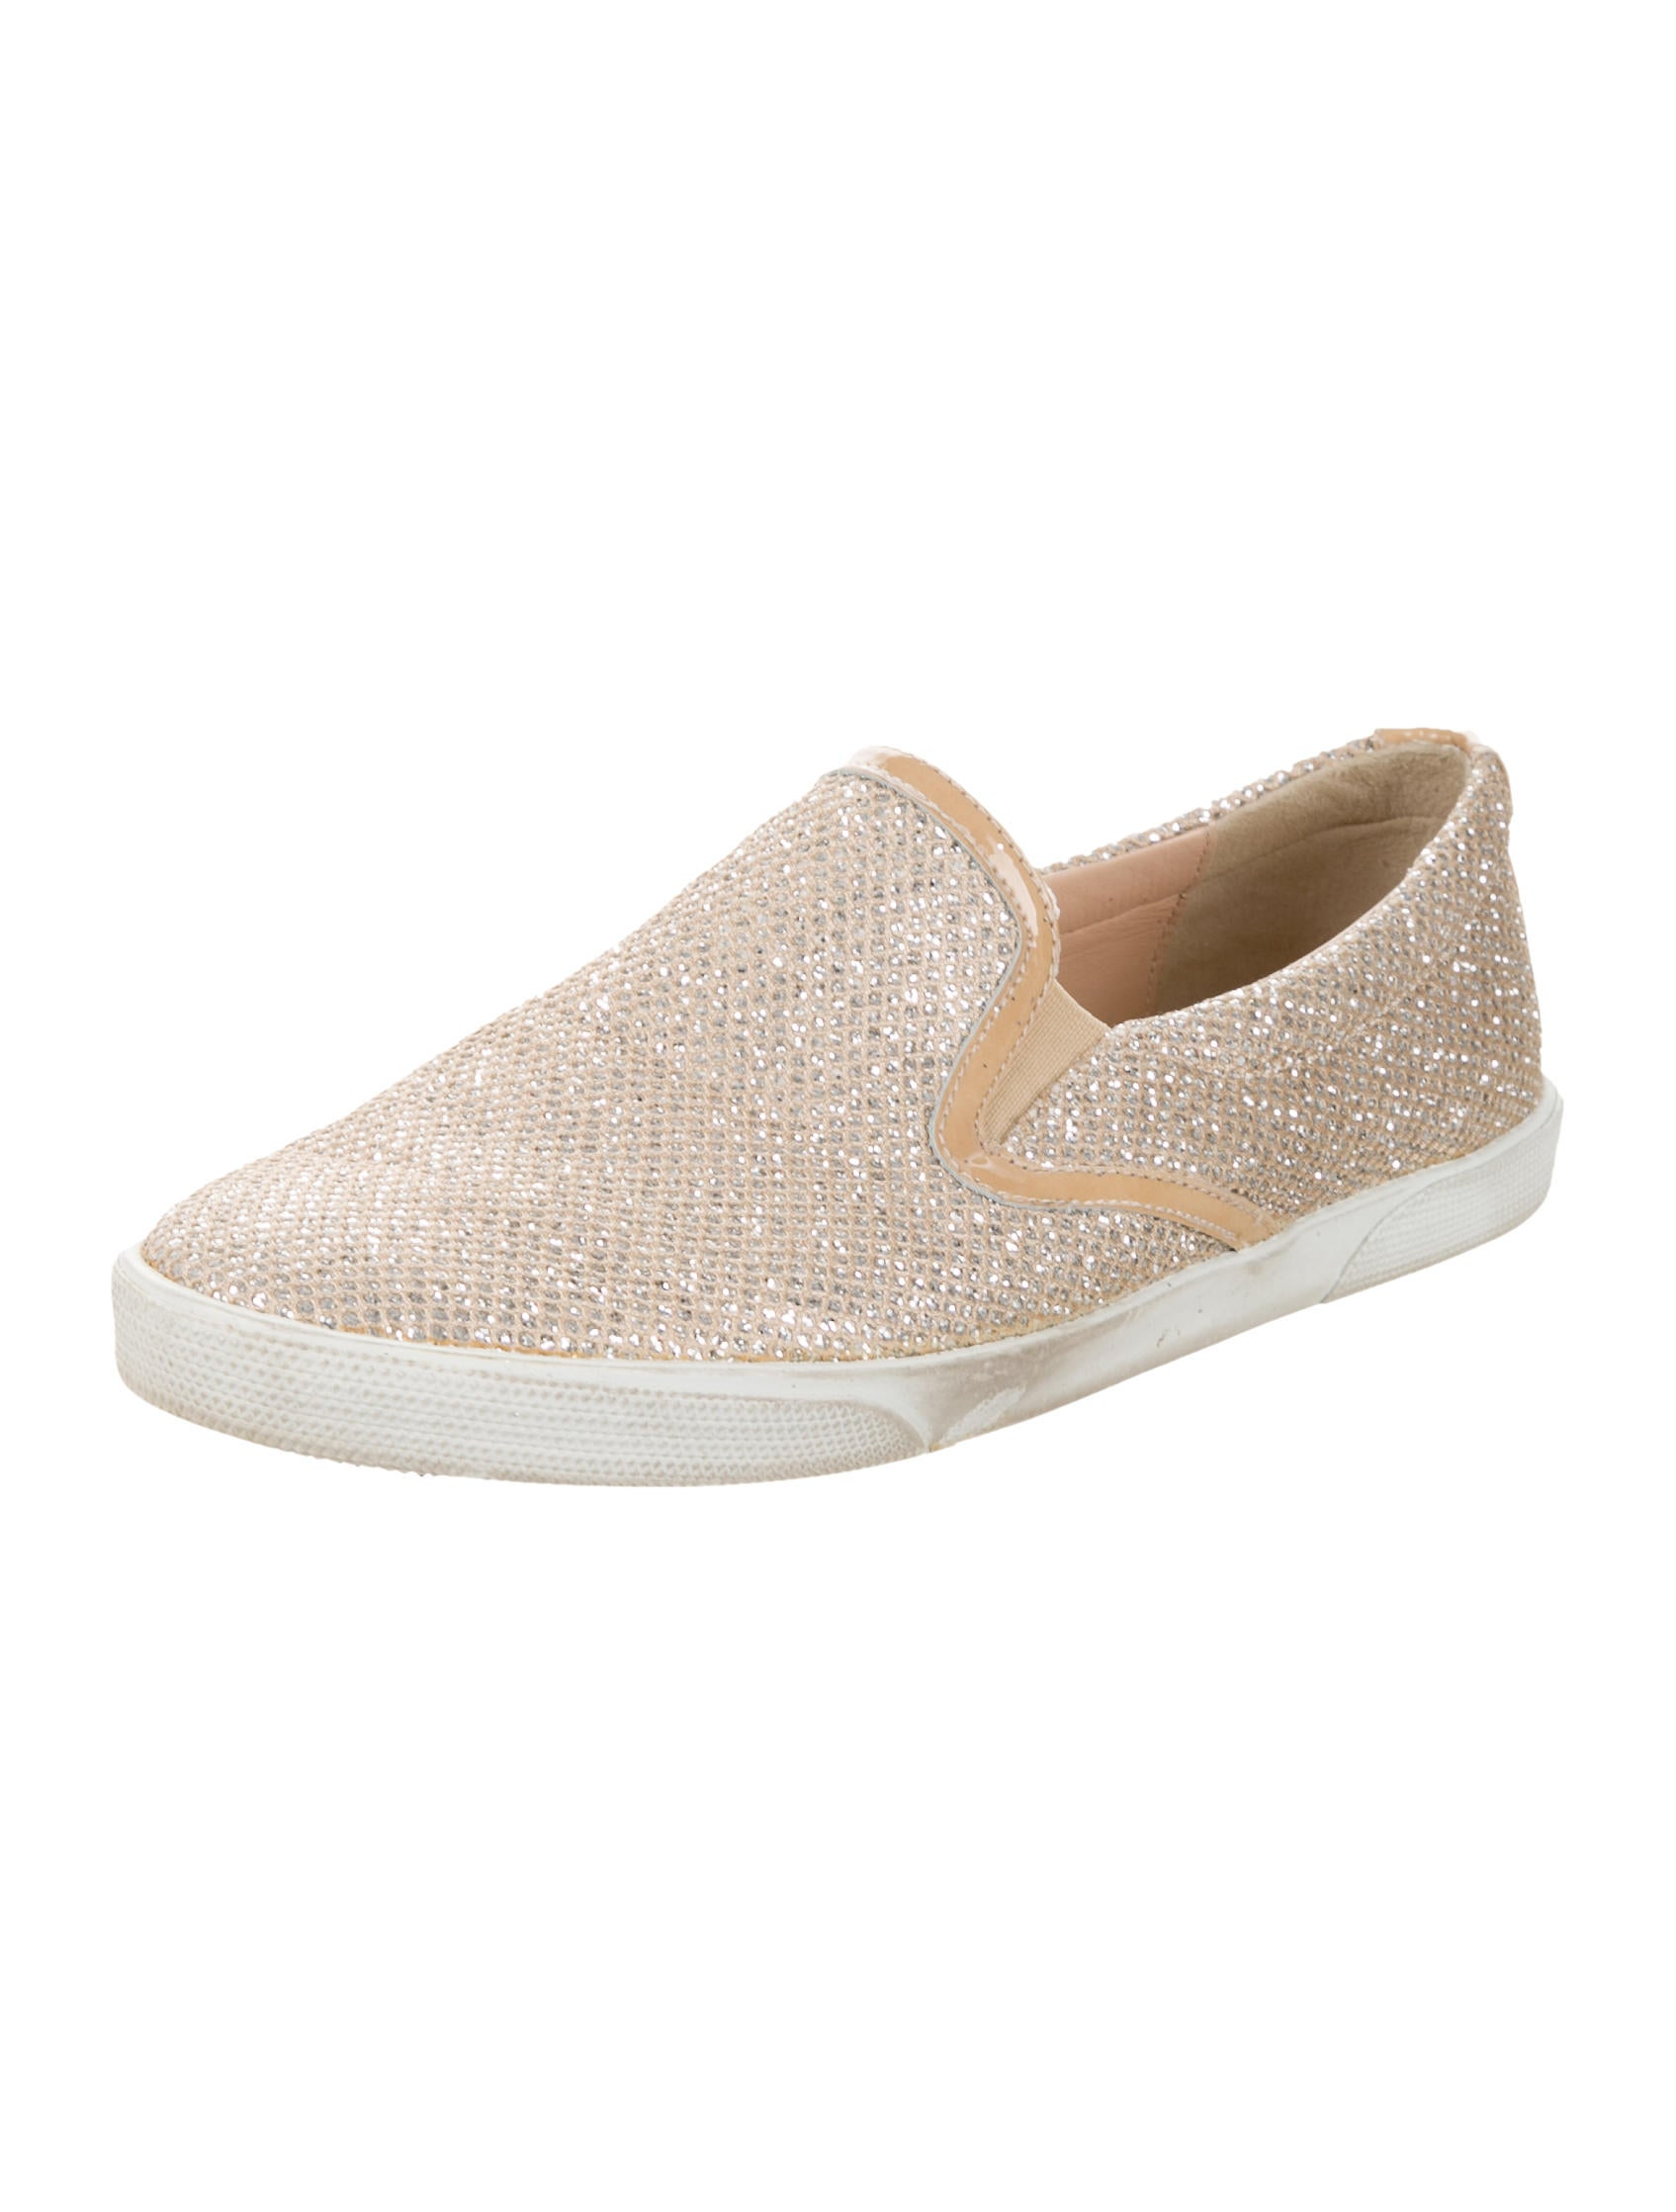 Women S Glitter Slip On Shoes